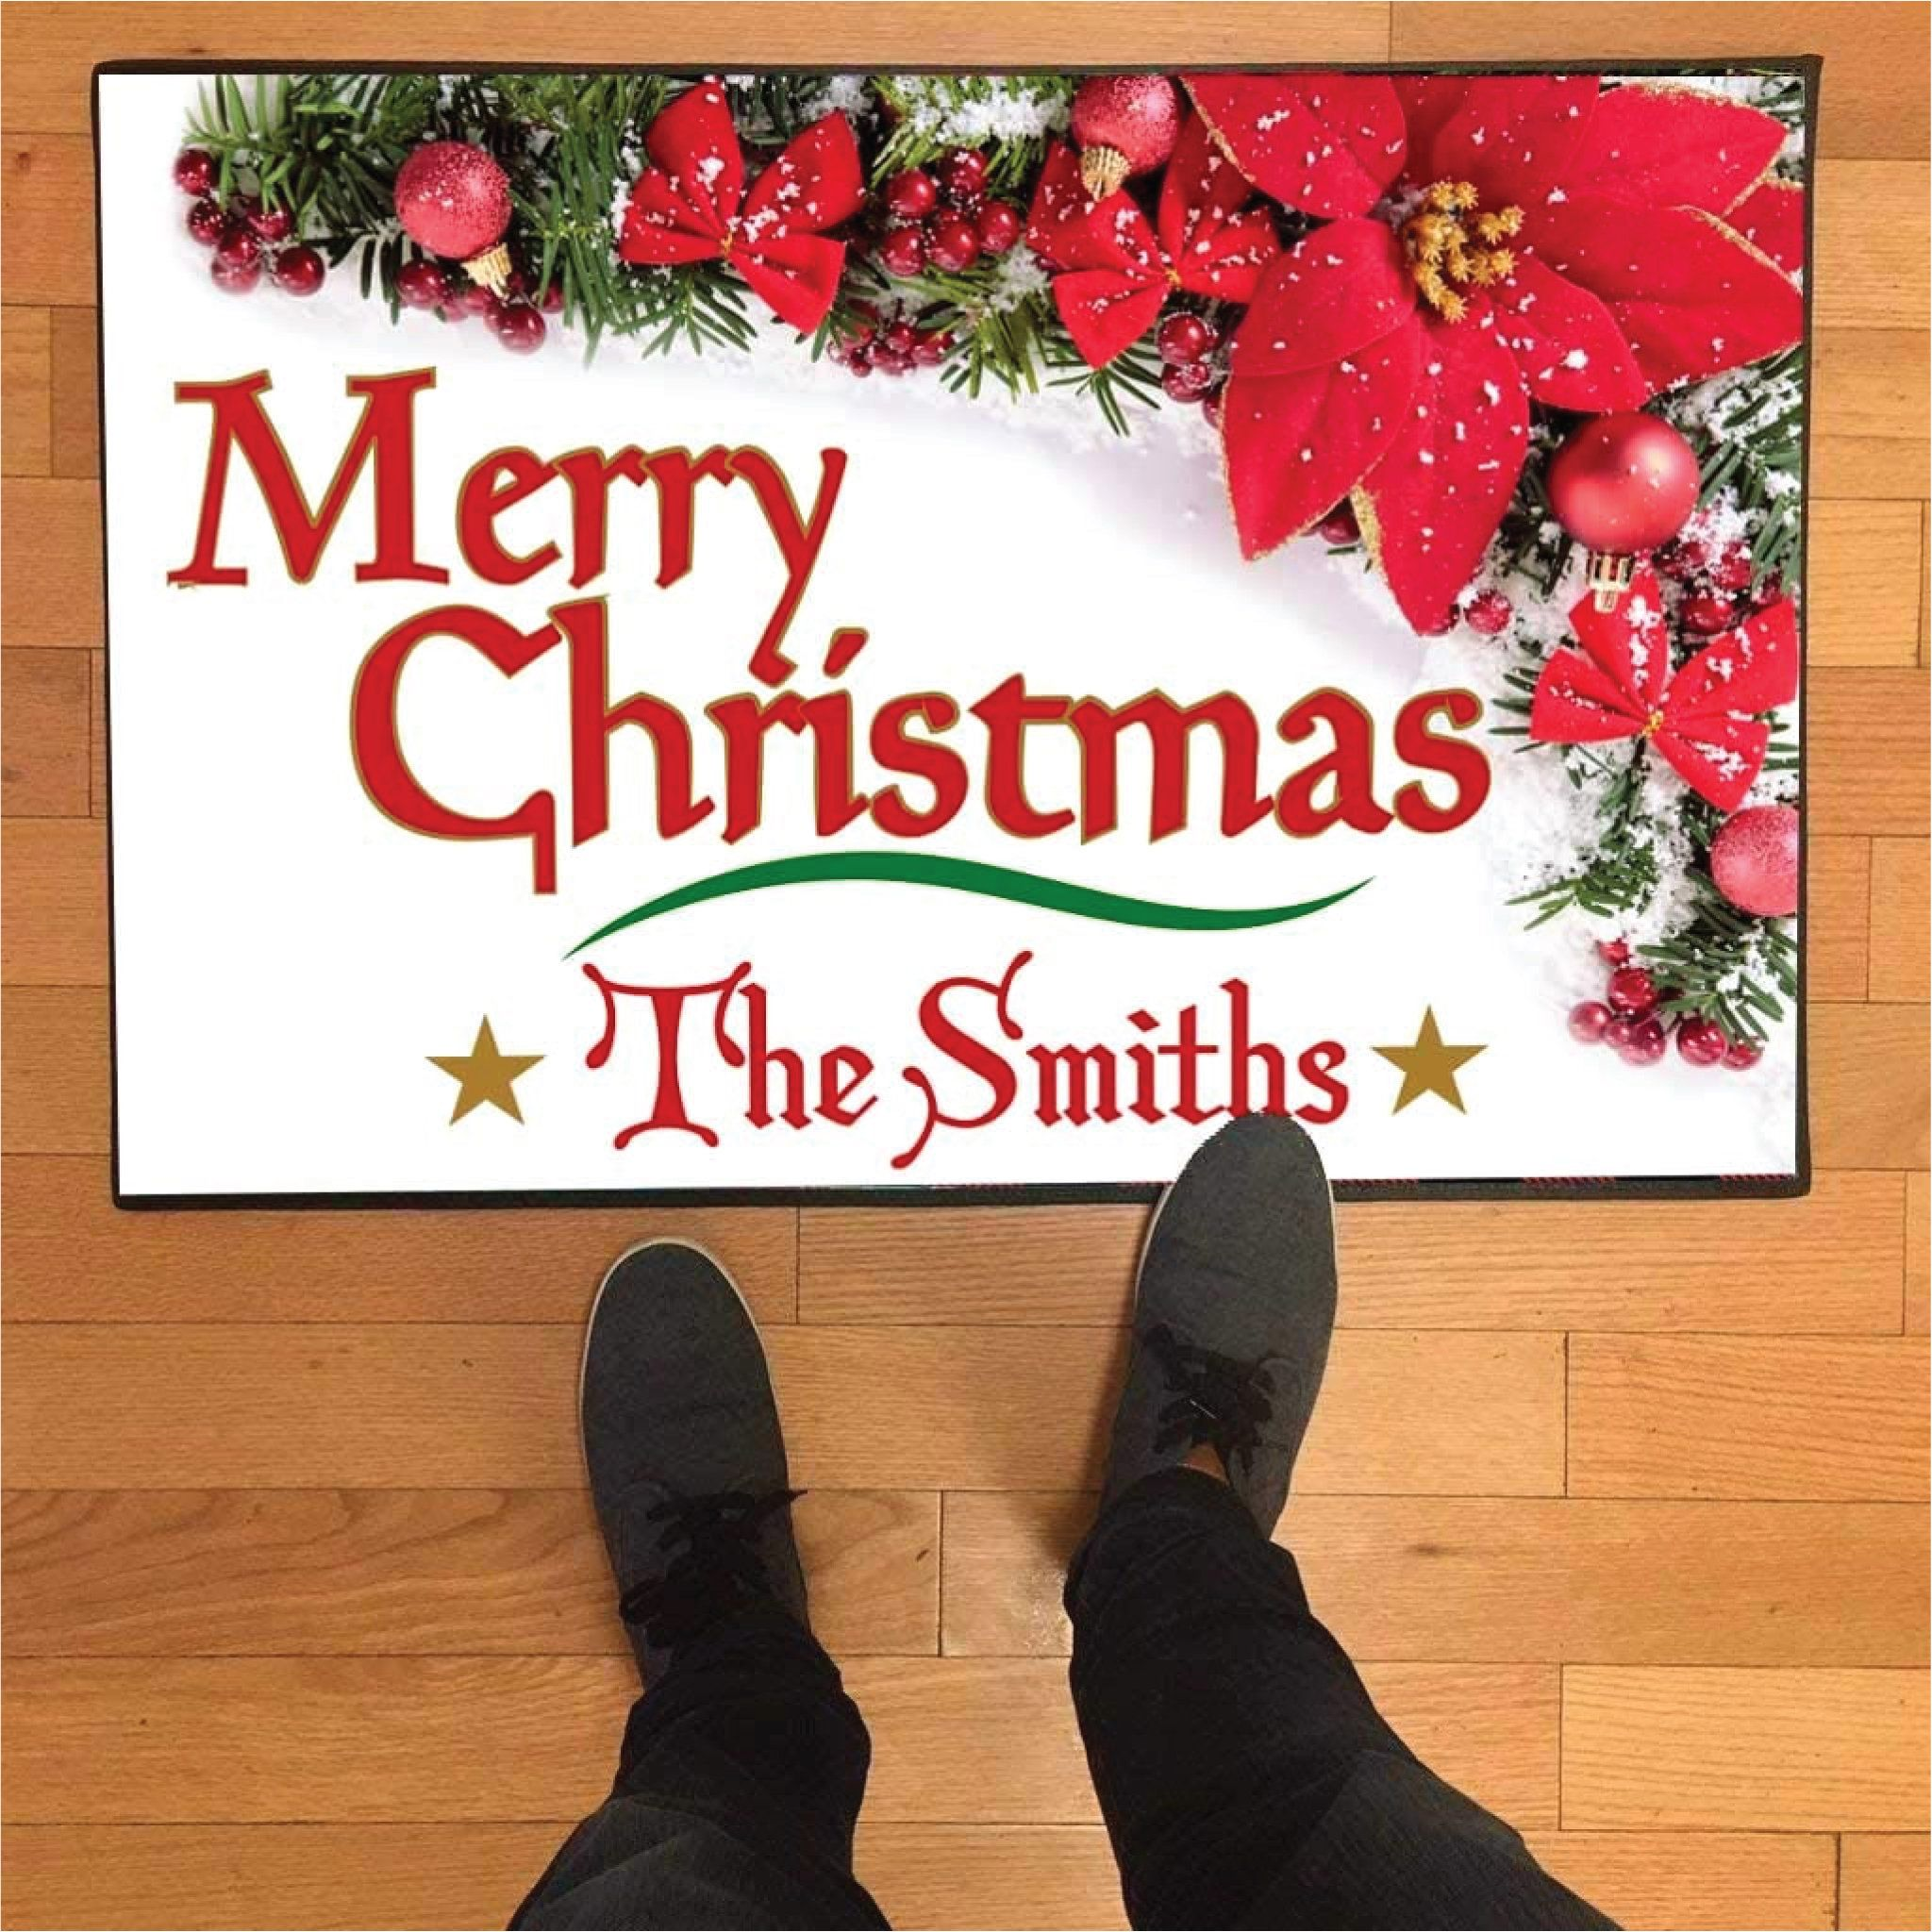 Merry Christmas Doormat 24 Inches by 36 Inches, Custom Christmas Door Mat, Personalized Christmas Themed Doormat #merrychristmas #customdoormat #personalizeddoormat #customentryrug